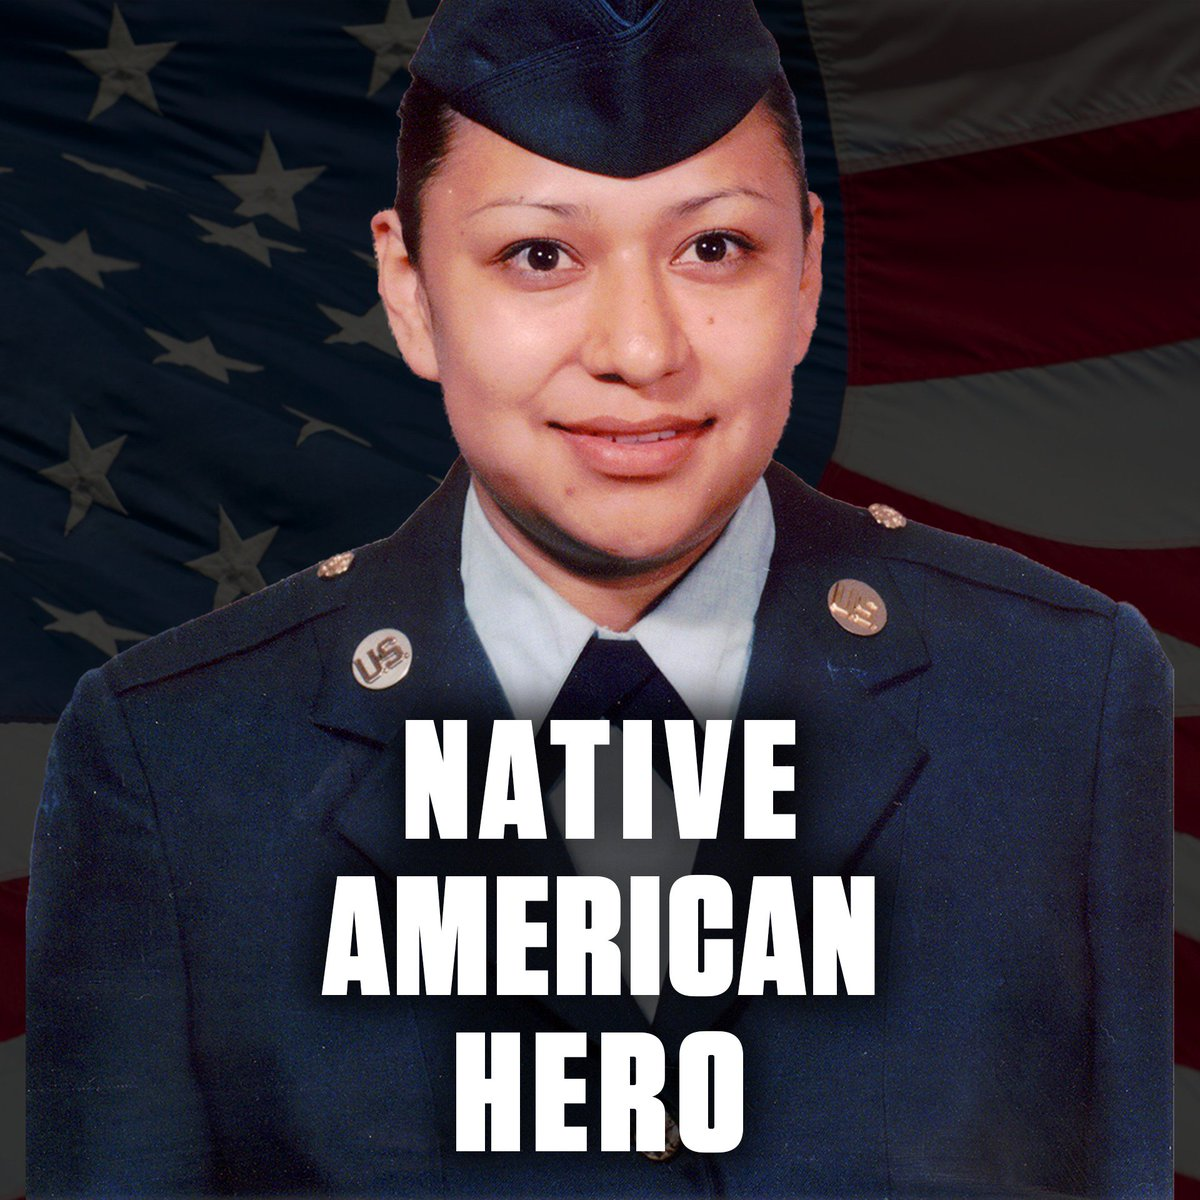 """We feel that Lori's purpose on this Earth was to bring people together in peace and unity...that is her legacy."" This #VeteransDay we're honoring those who've served, including Lori Piestewa.  #NativeAmericanHeritageMonth"